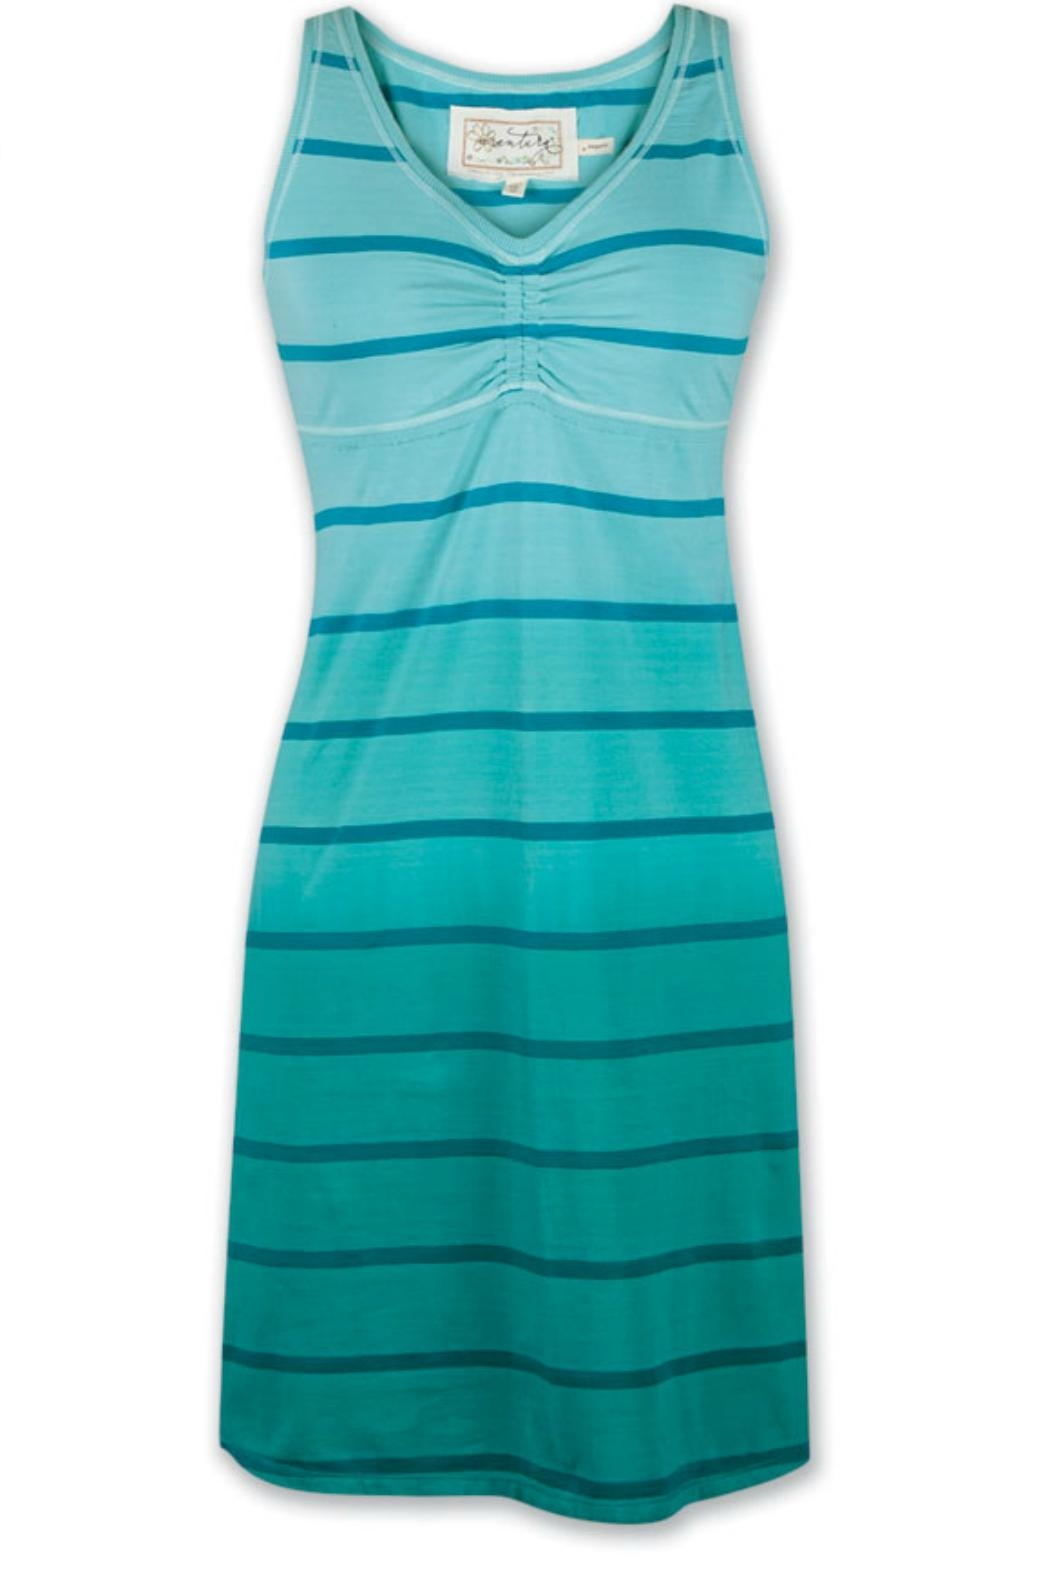 Aventura Clothing Cotton Striped Dress - Main Image